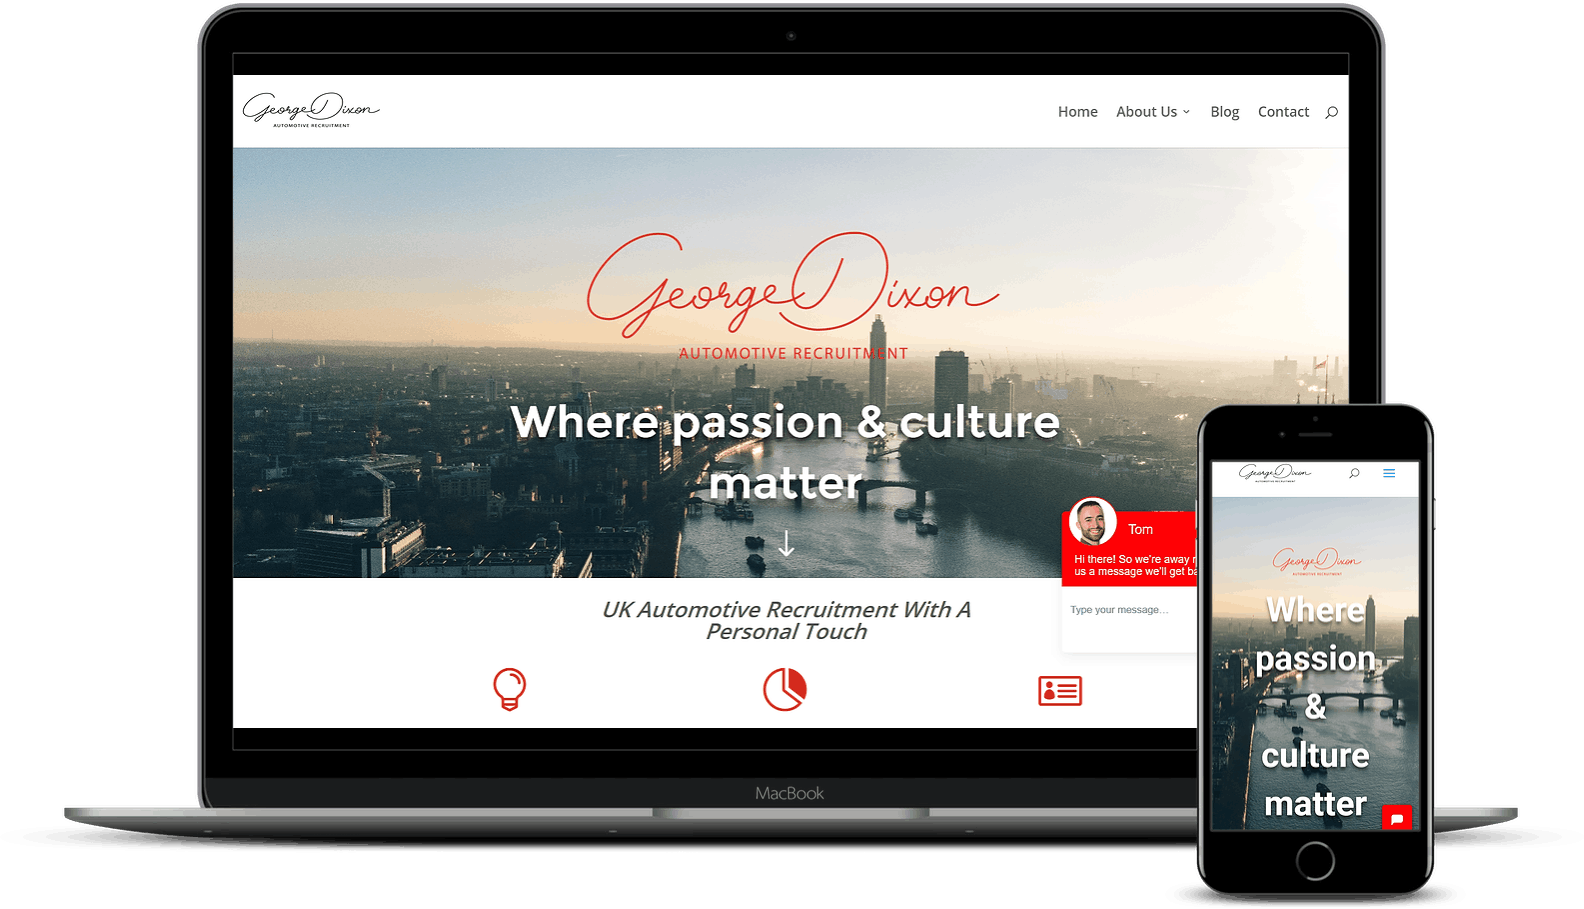 Elevate Digital Website Design Mockup - George Dixon